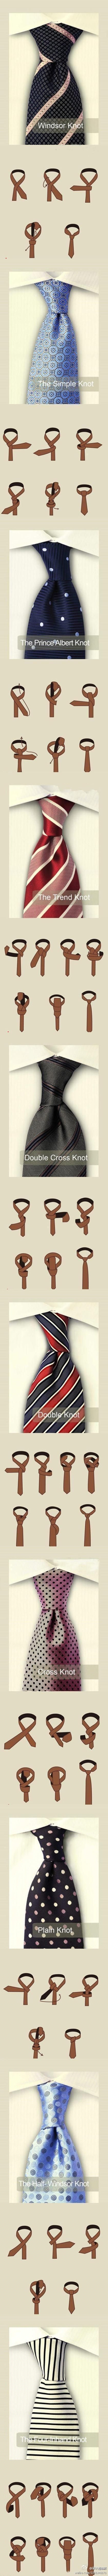 Tie knots - ok so this is NOT my style but my son loves ties n soon clip on's will not do. soooo i must learn these cuz  a mom;s gotta do what a mom's gotta do!   :)